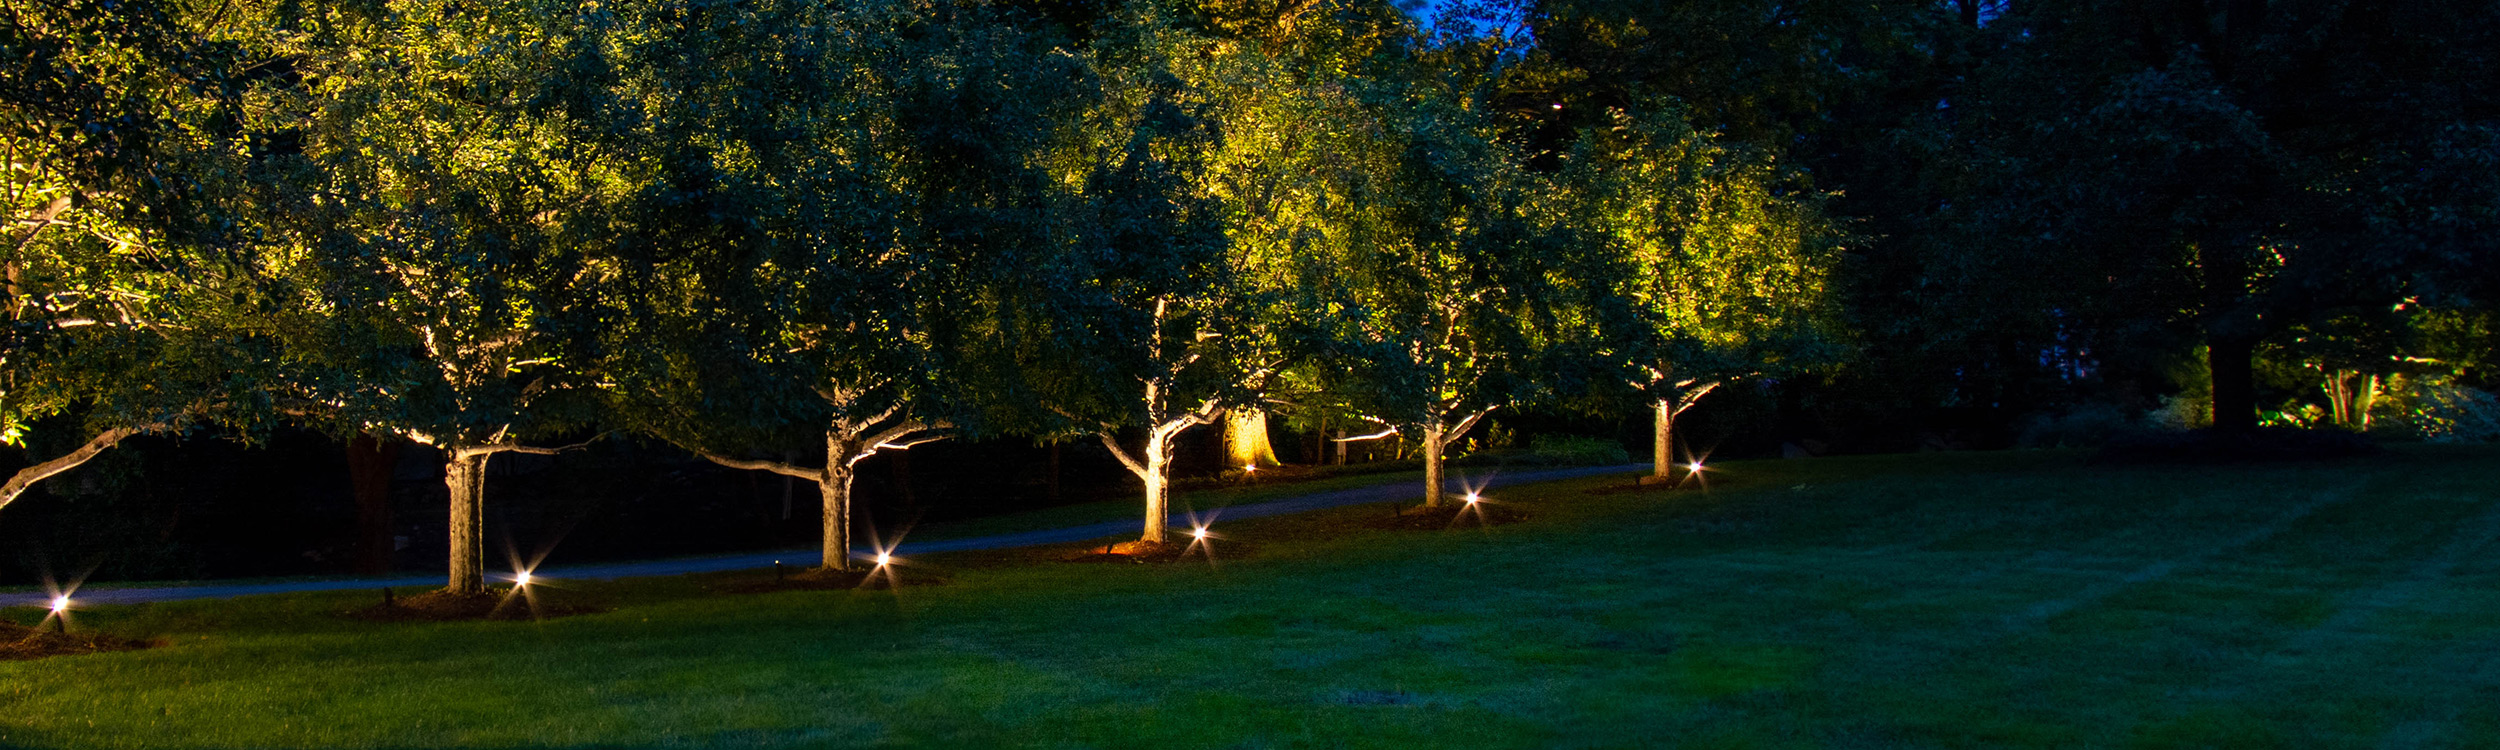 Commonwealth Landscape Lighting